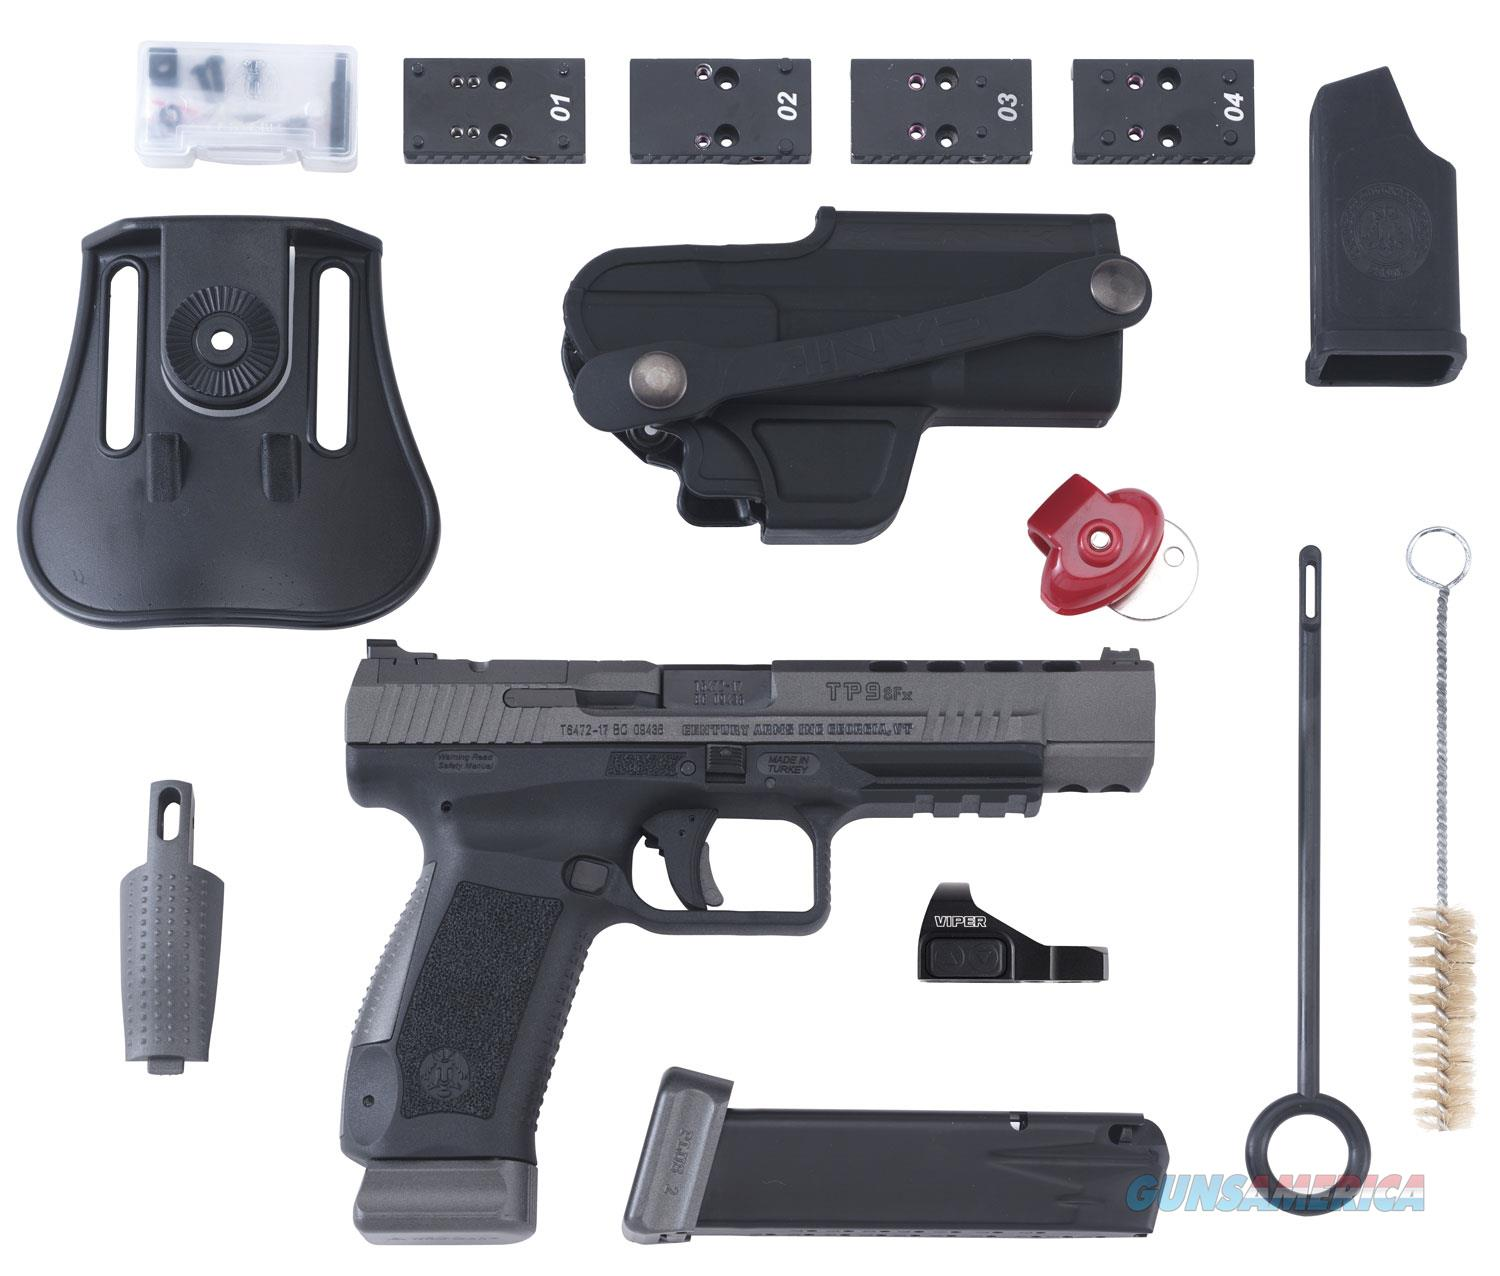 """Century Arms/CIA CANIK TP9SFx 9mm 5.2"""" 20+1 with Vortex Viper Red Dot - New in Box  Guns > Pistols > Canik USA Pistols"""